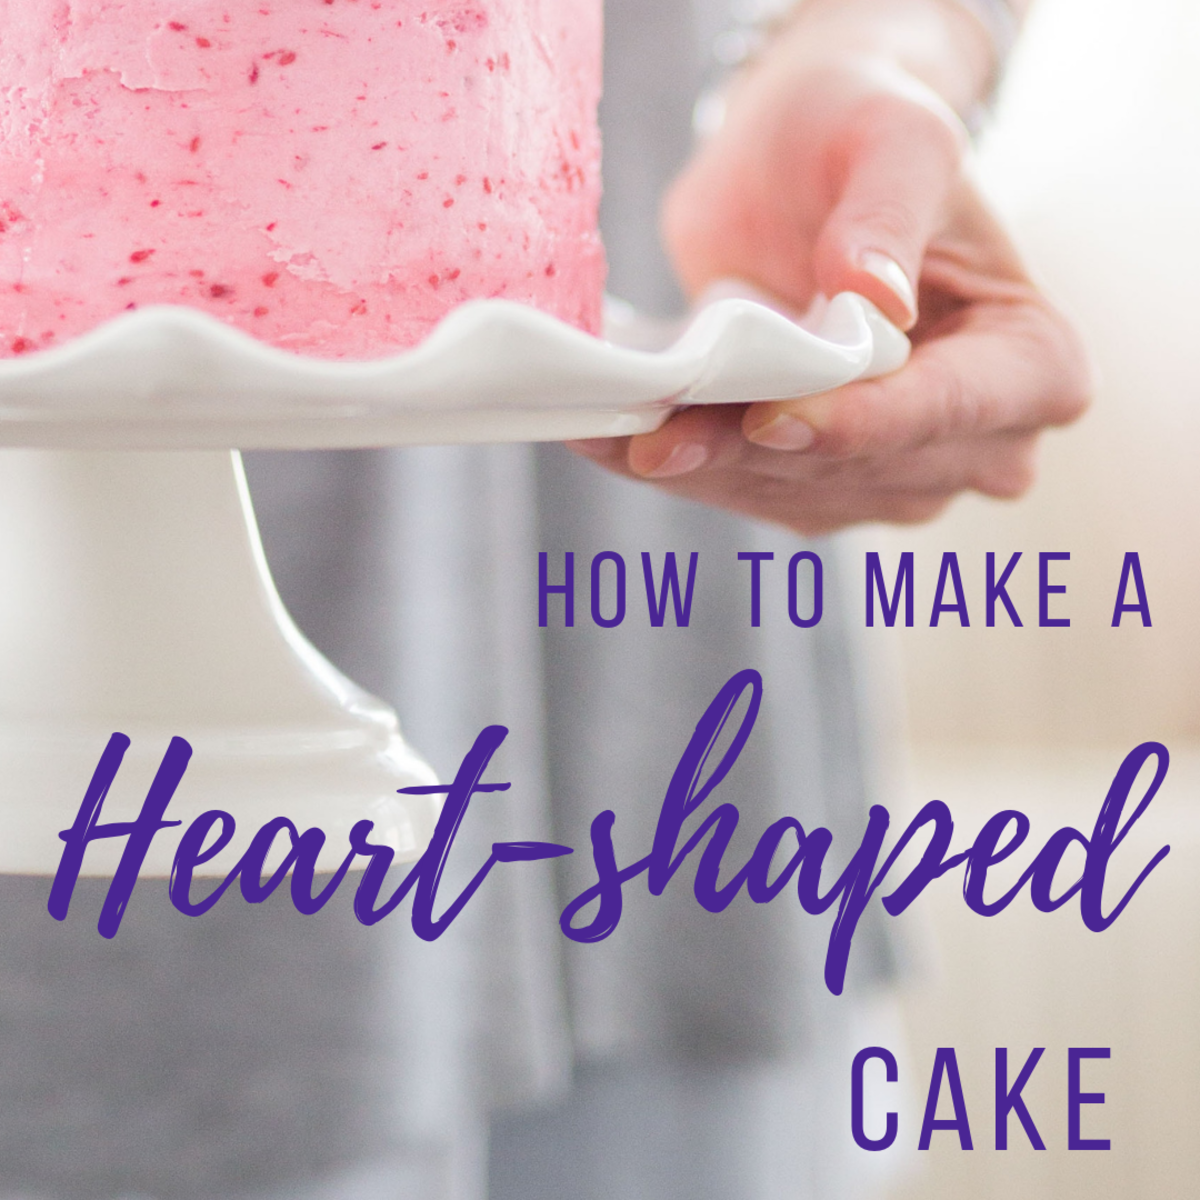 Valentine's Day: How to Make a Heart-Shaped Cake With a Round Pan